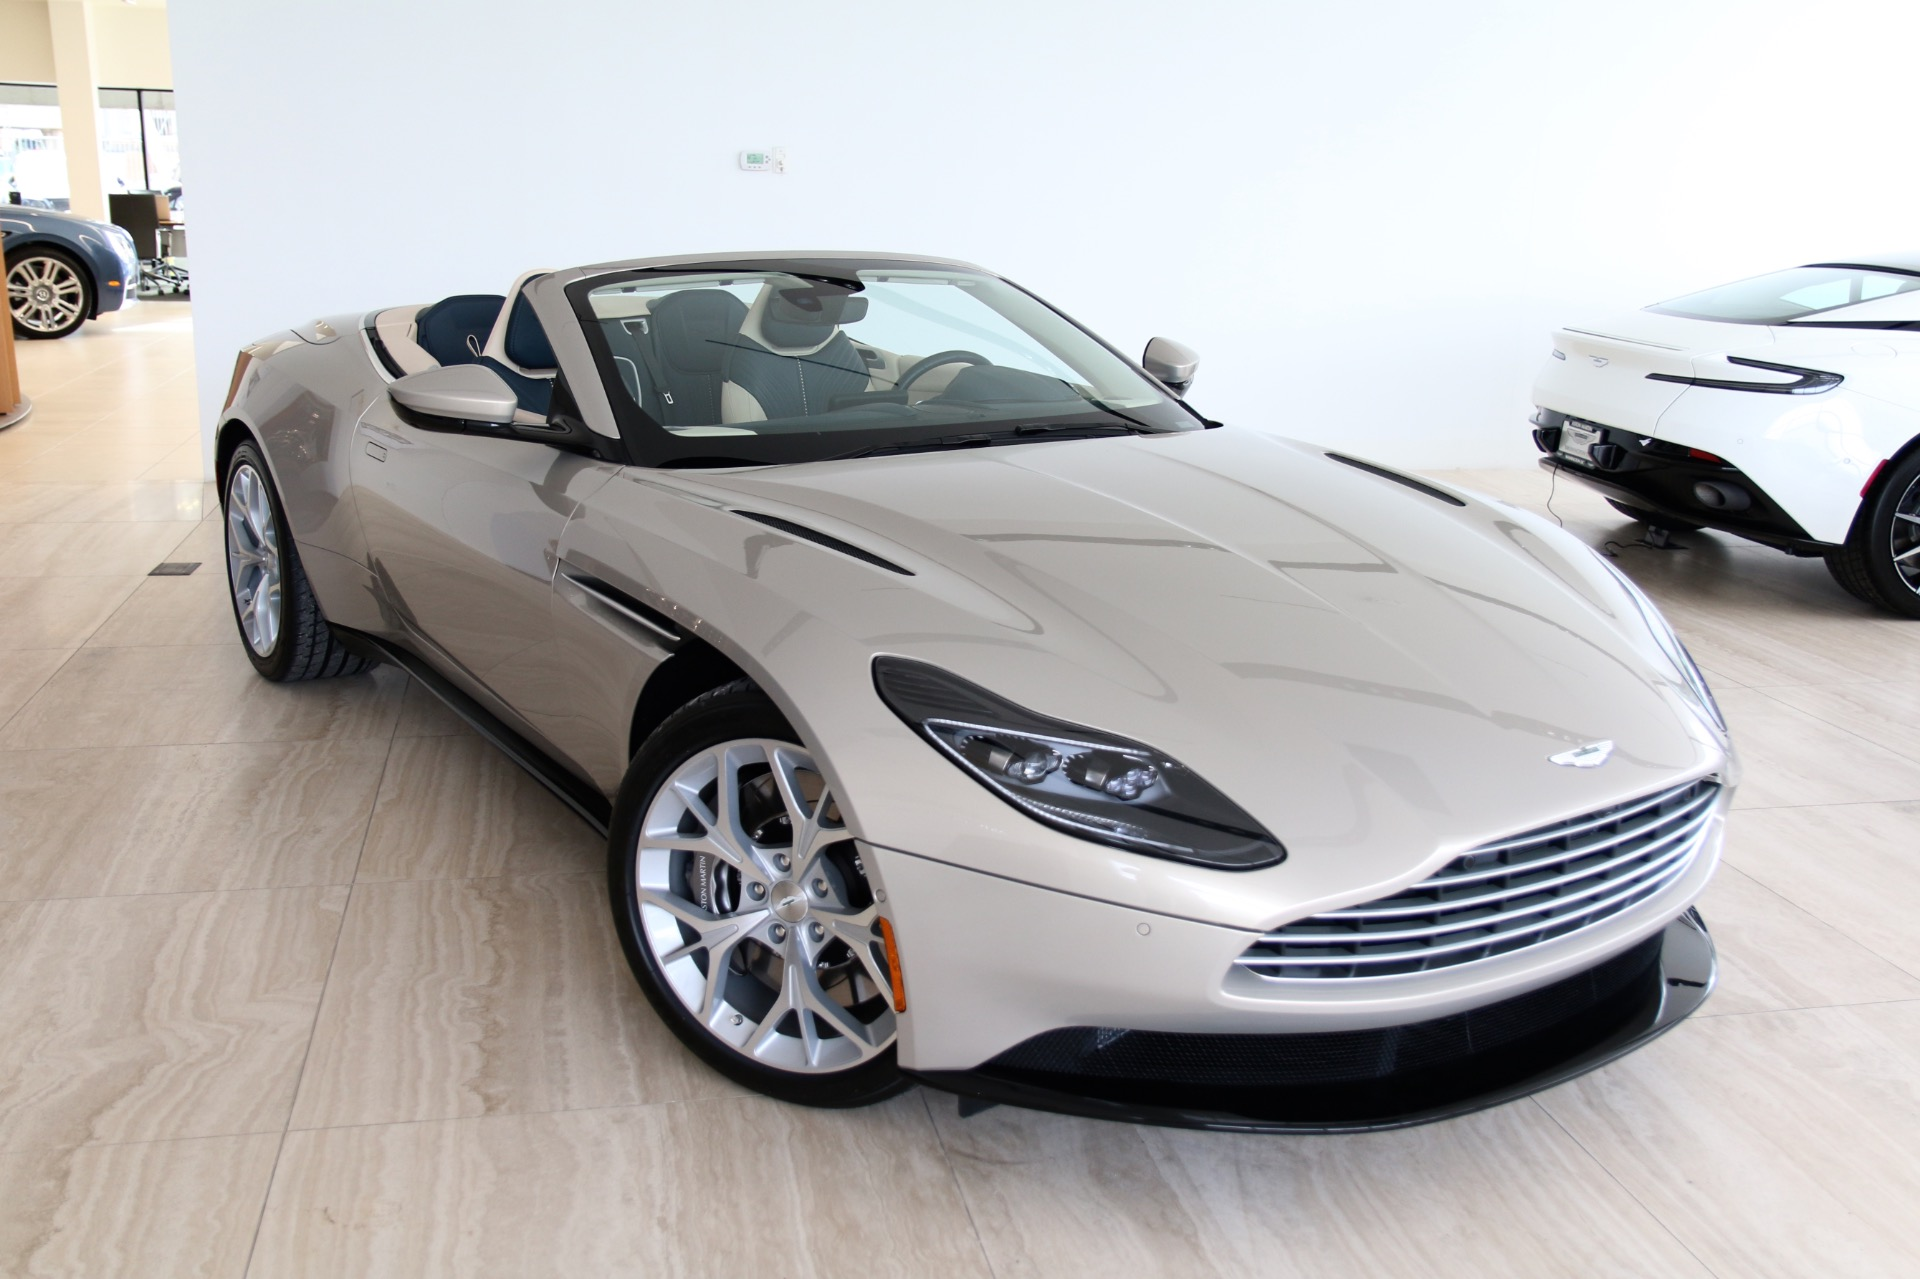 Aston Martin DB V VOLANTE CALL TO ORDER Stock NX - Aston martin lease price